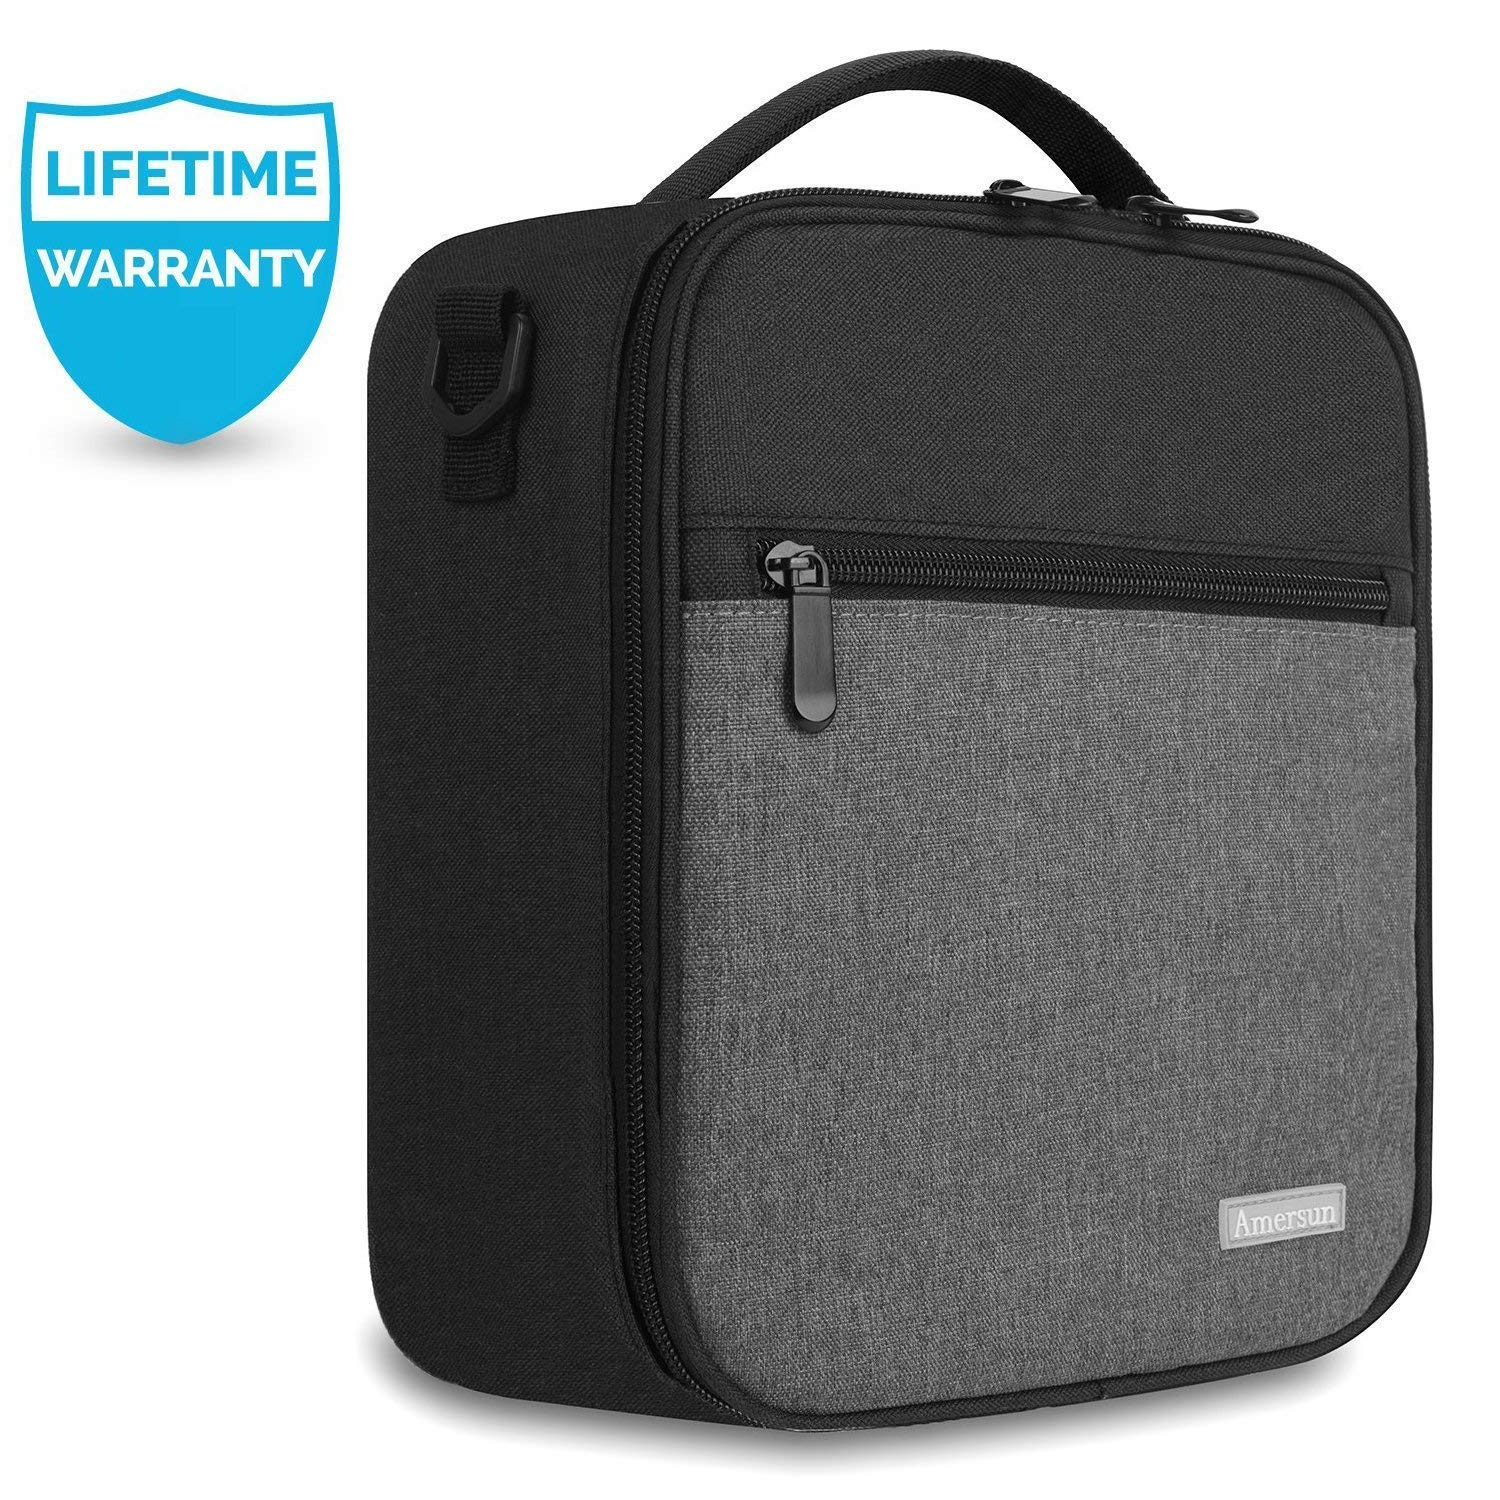 Lunch Bag with Firm Foil-BPA FREE,Amersun Reusable Insulated School Lunch Box Durable Thermal Lunch Cooler Pack with Strap for Kids Boys Men Women Girls Adults,Spill-resistant /& 2 Pockets Black Gray